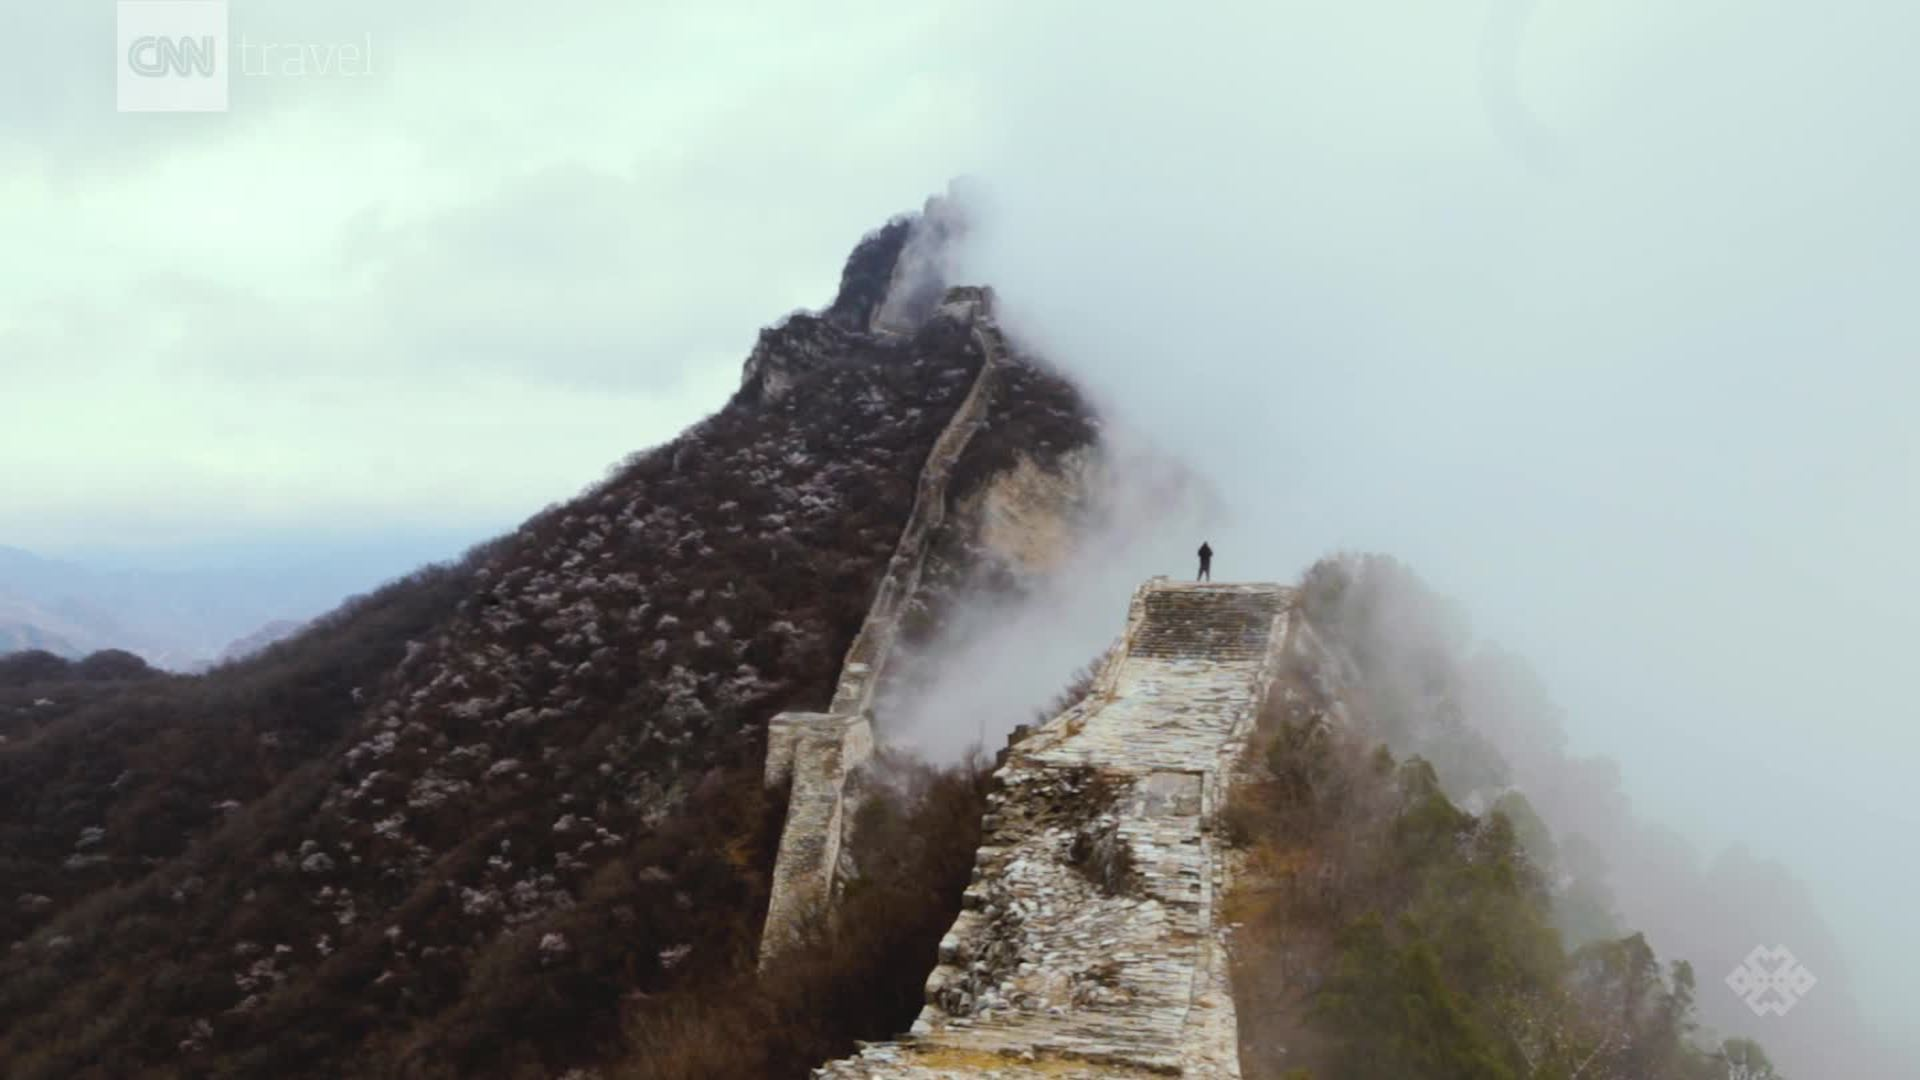 Great wall of china dos and donts cnn travel biocorpaavc Gallery